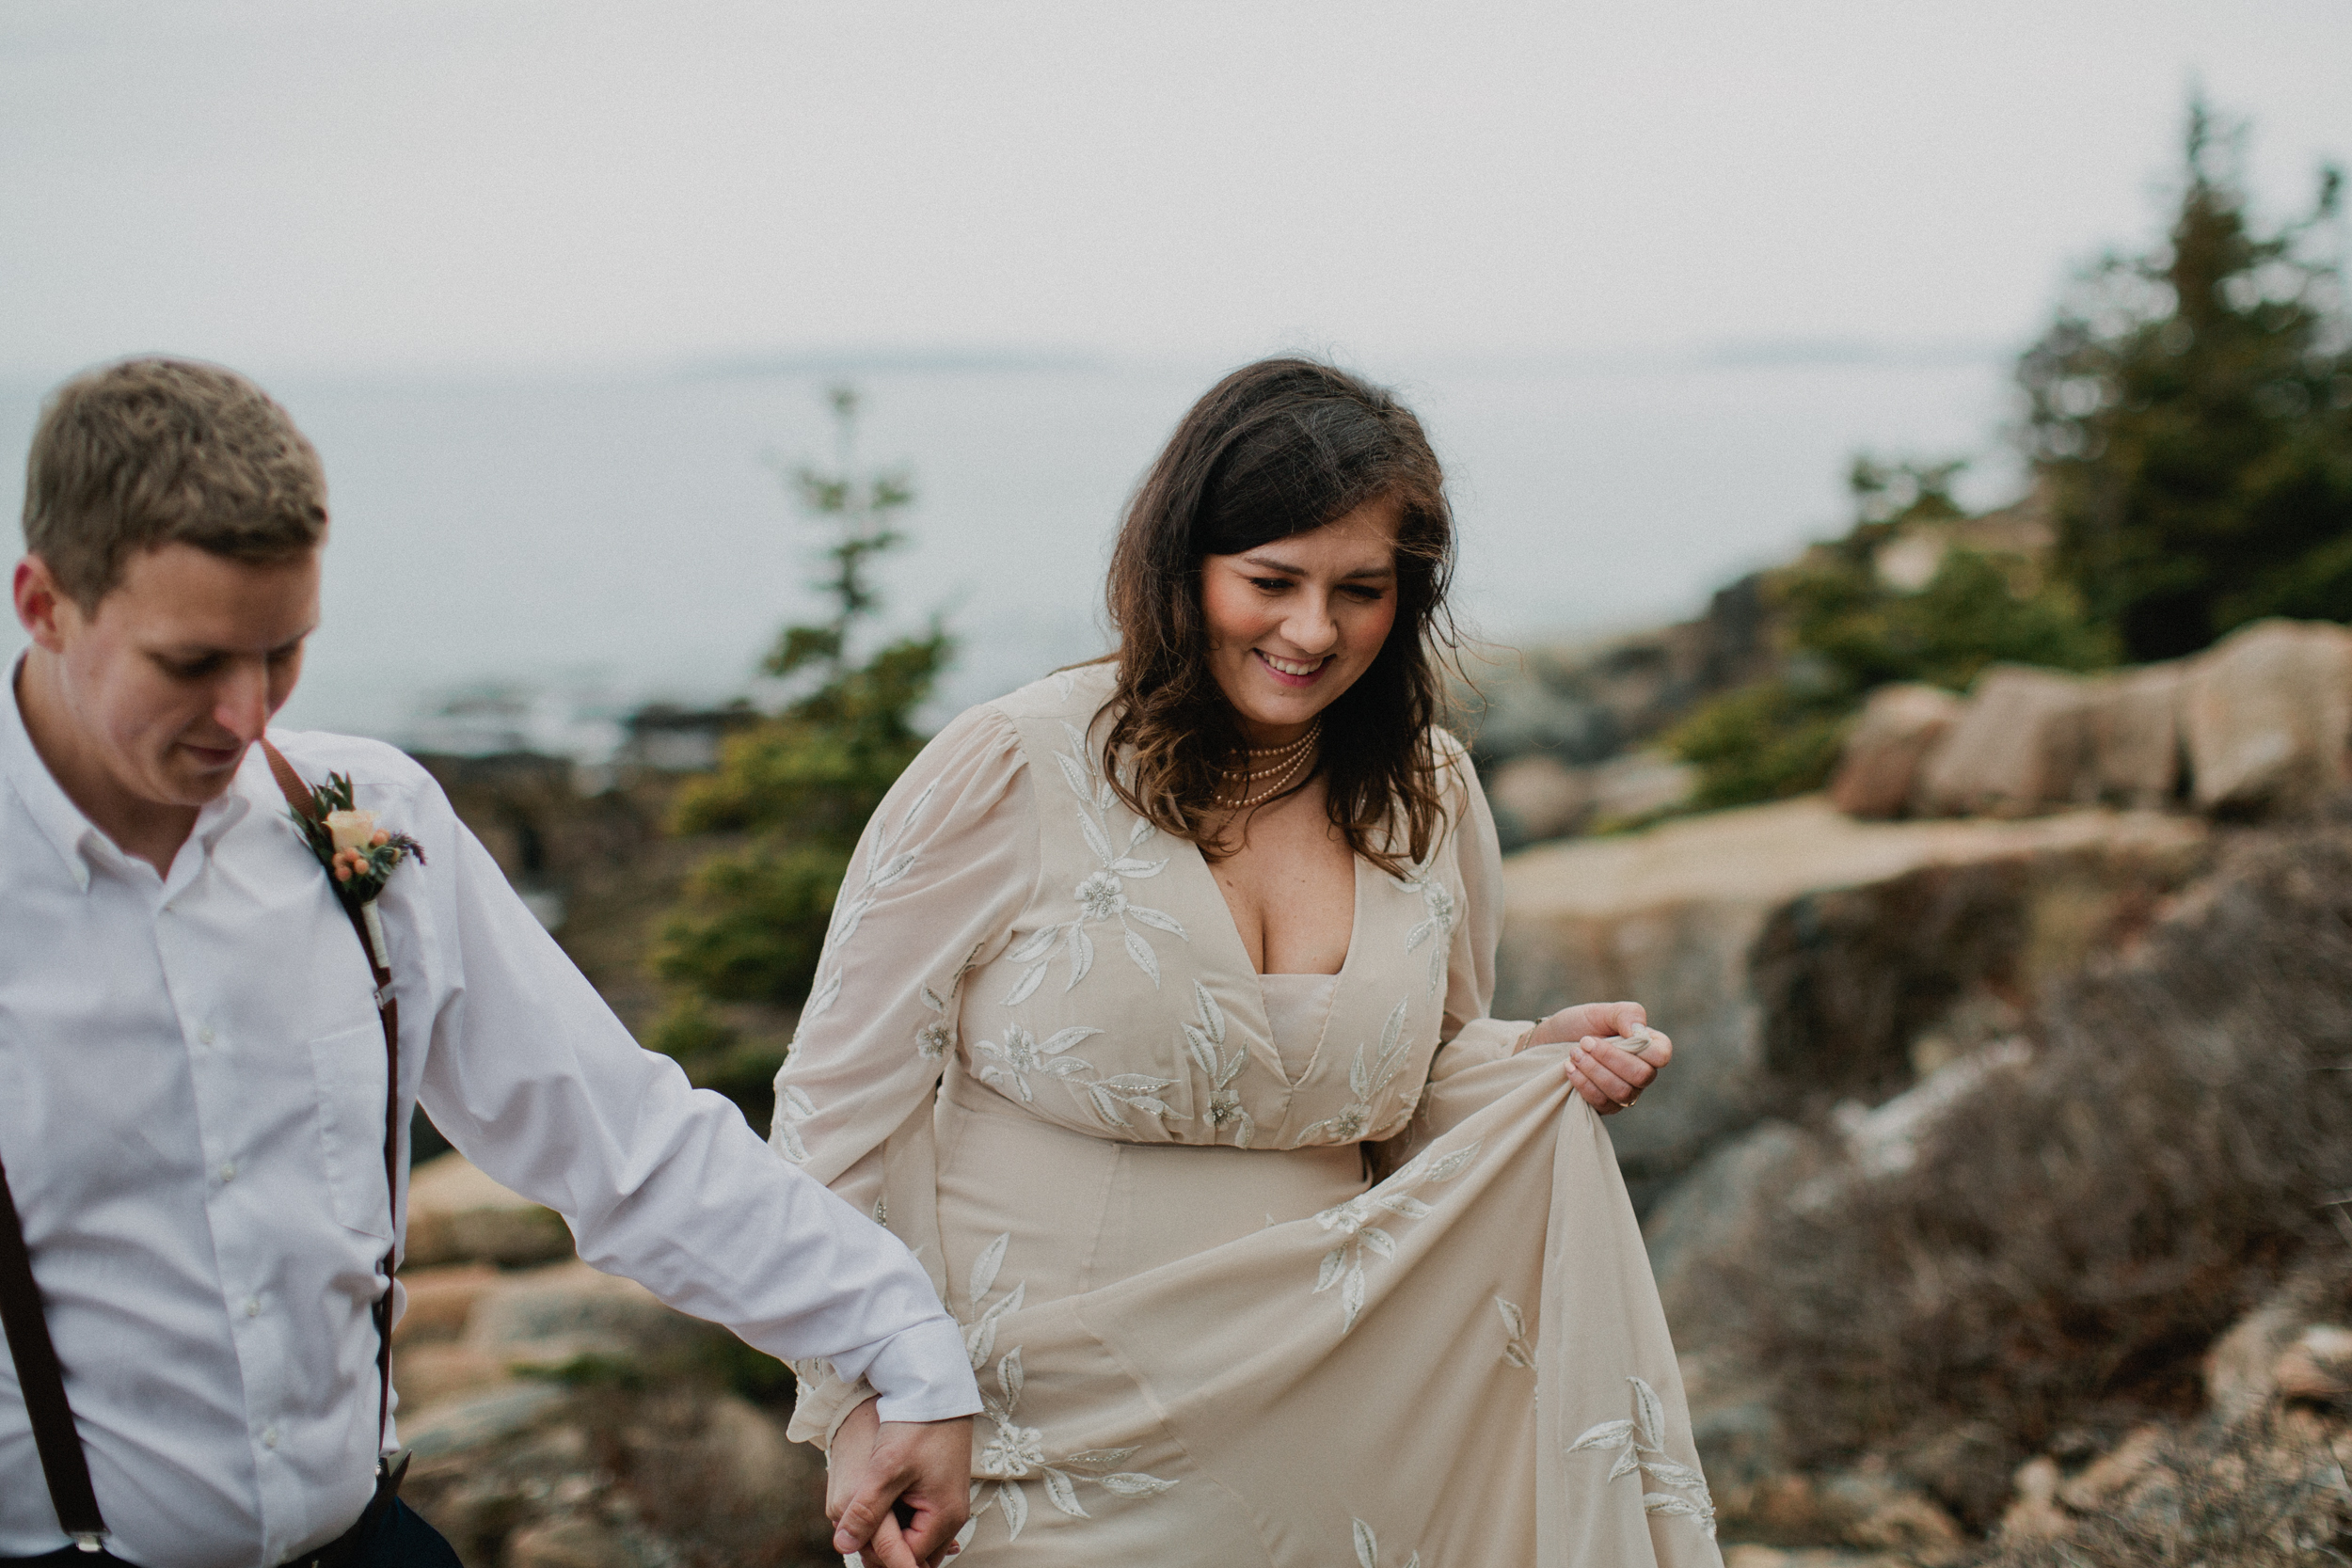 Acadia-Elopement-Photos-363.jpg